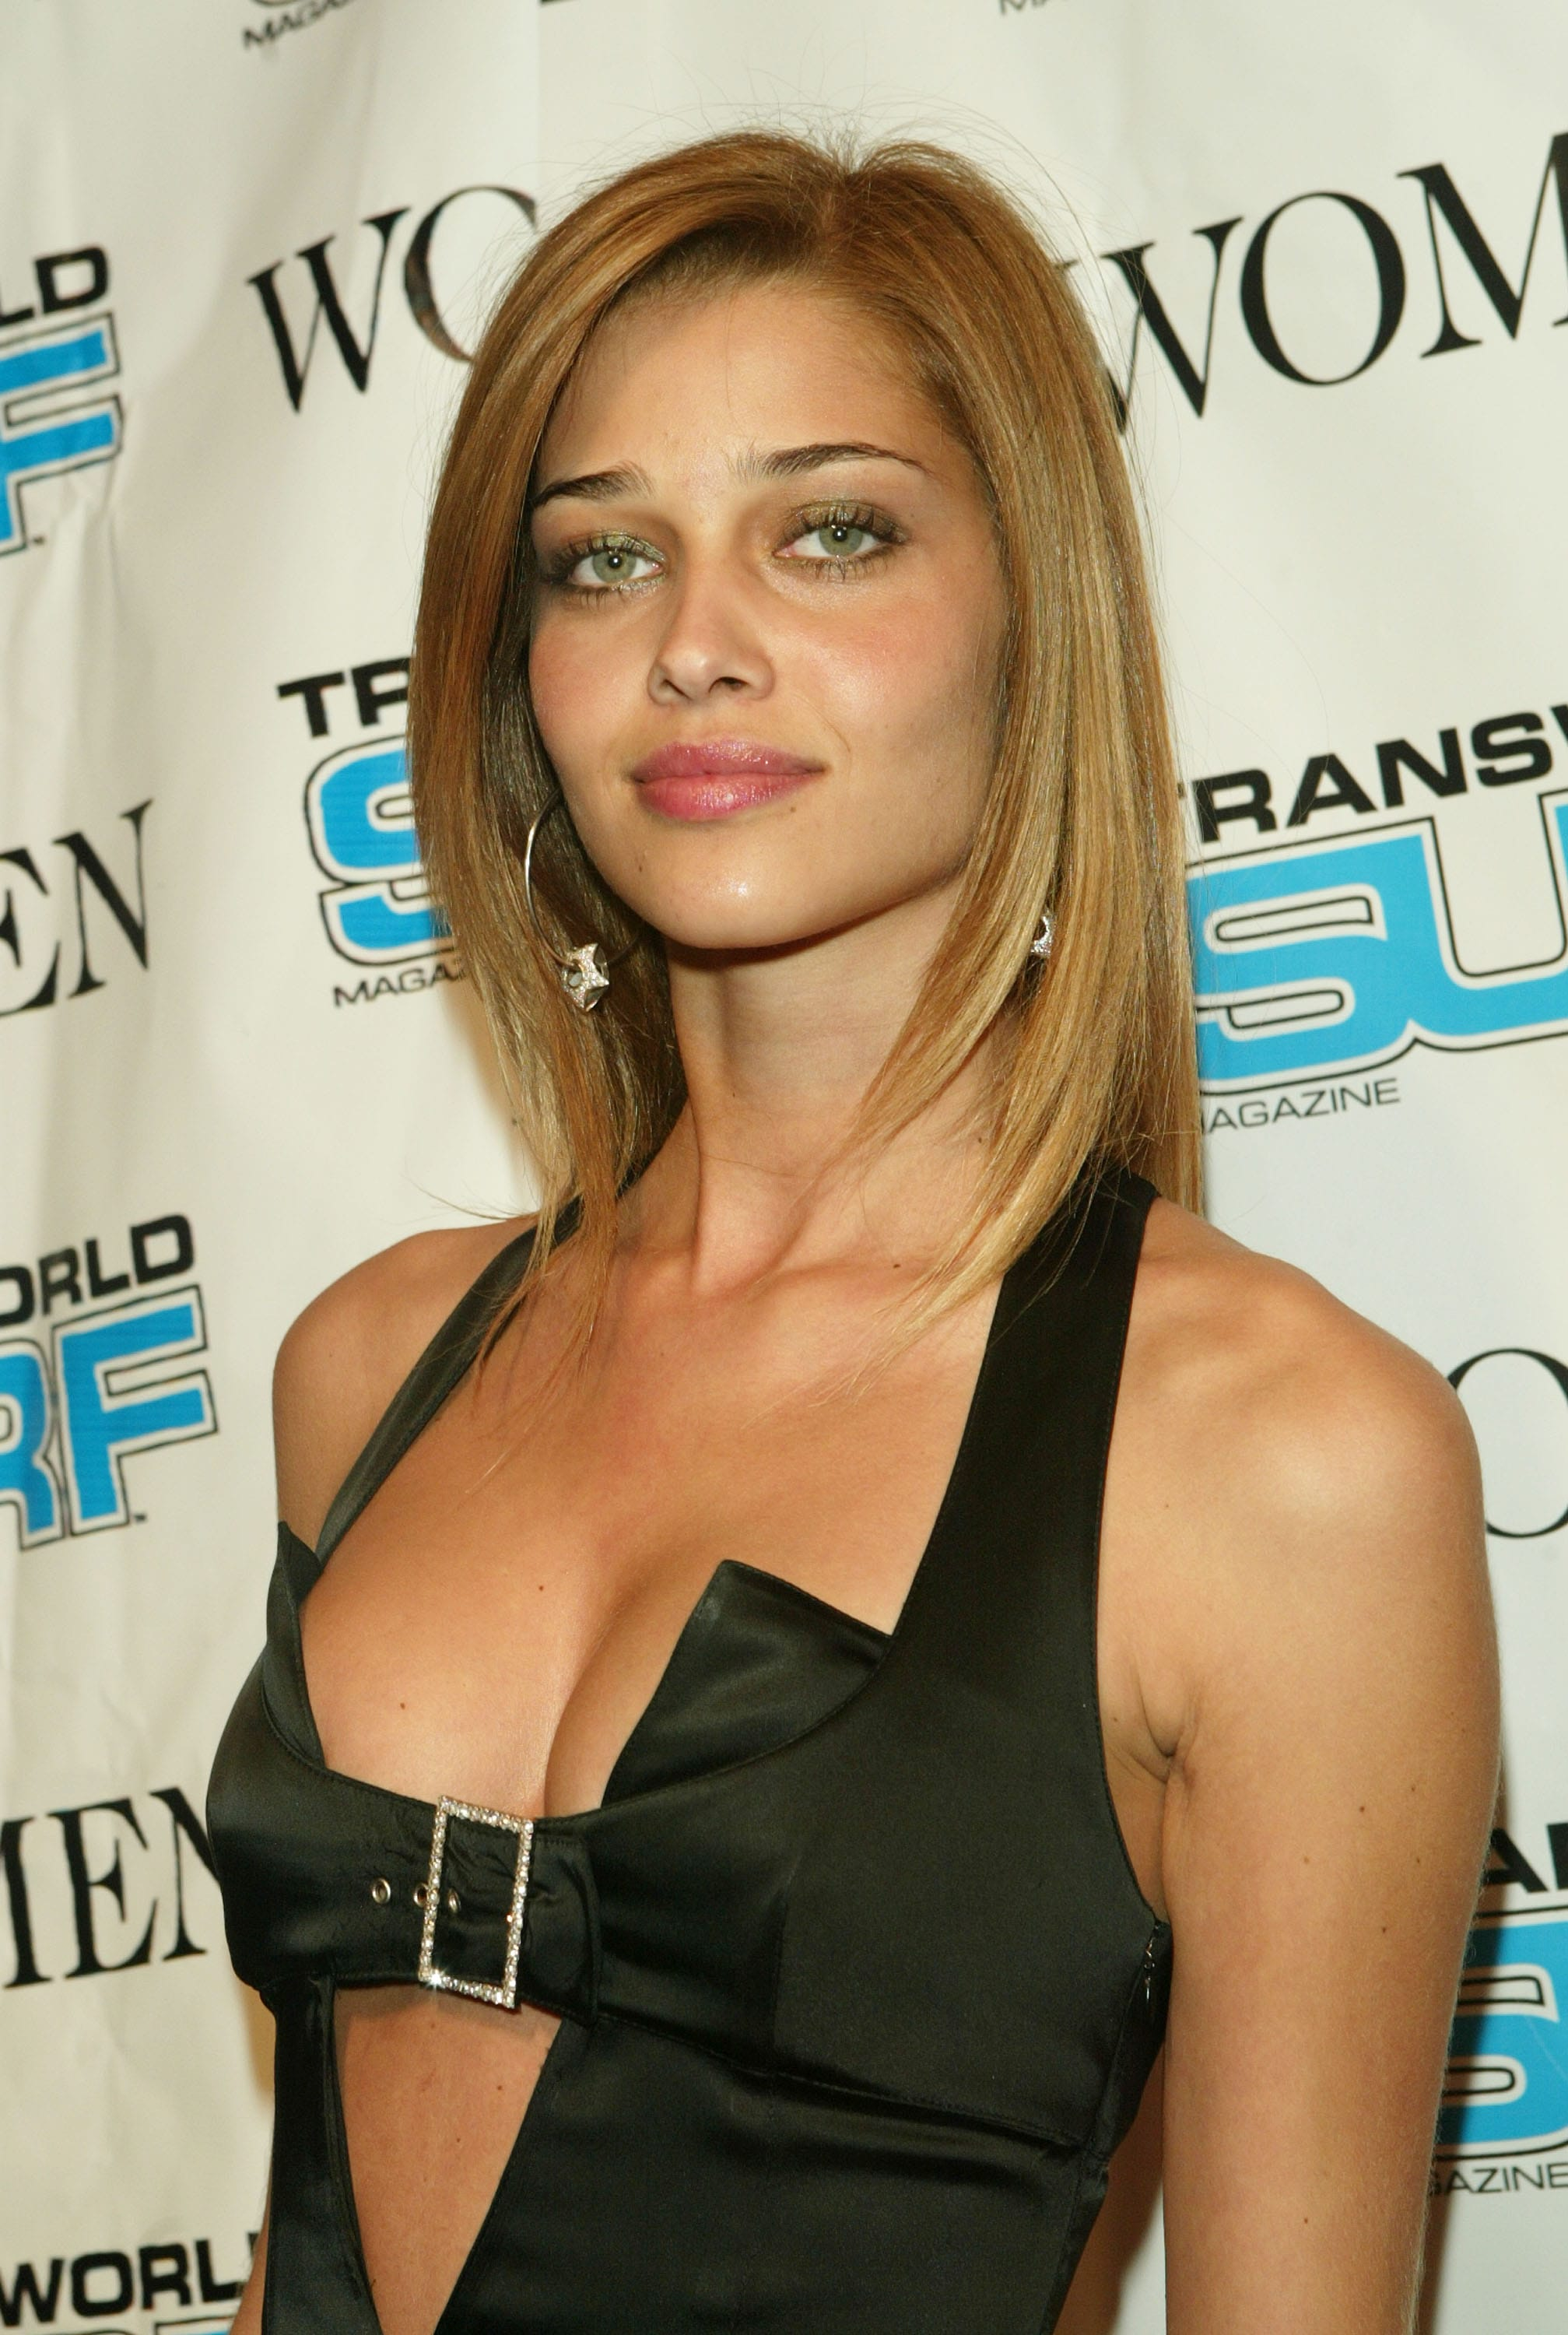 Ana Beatriz Barros Download